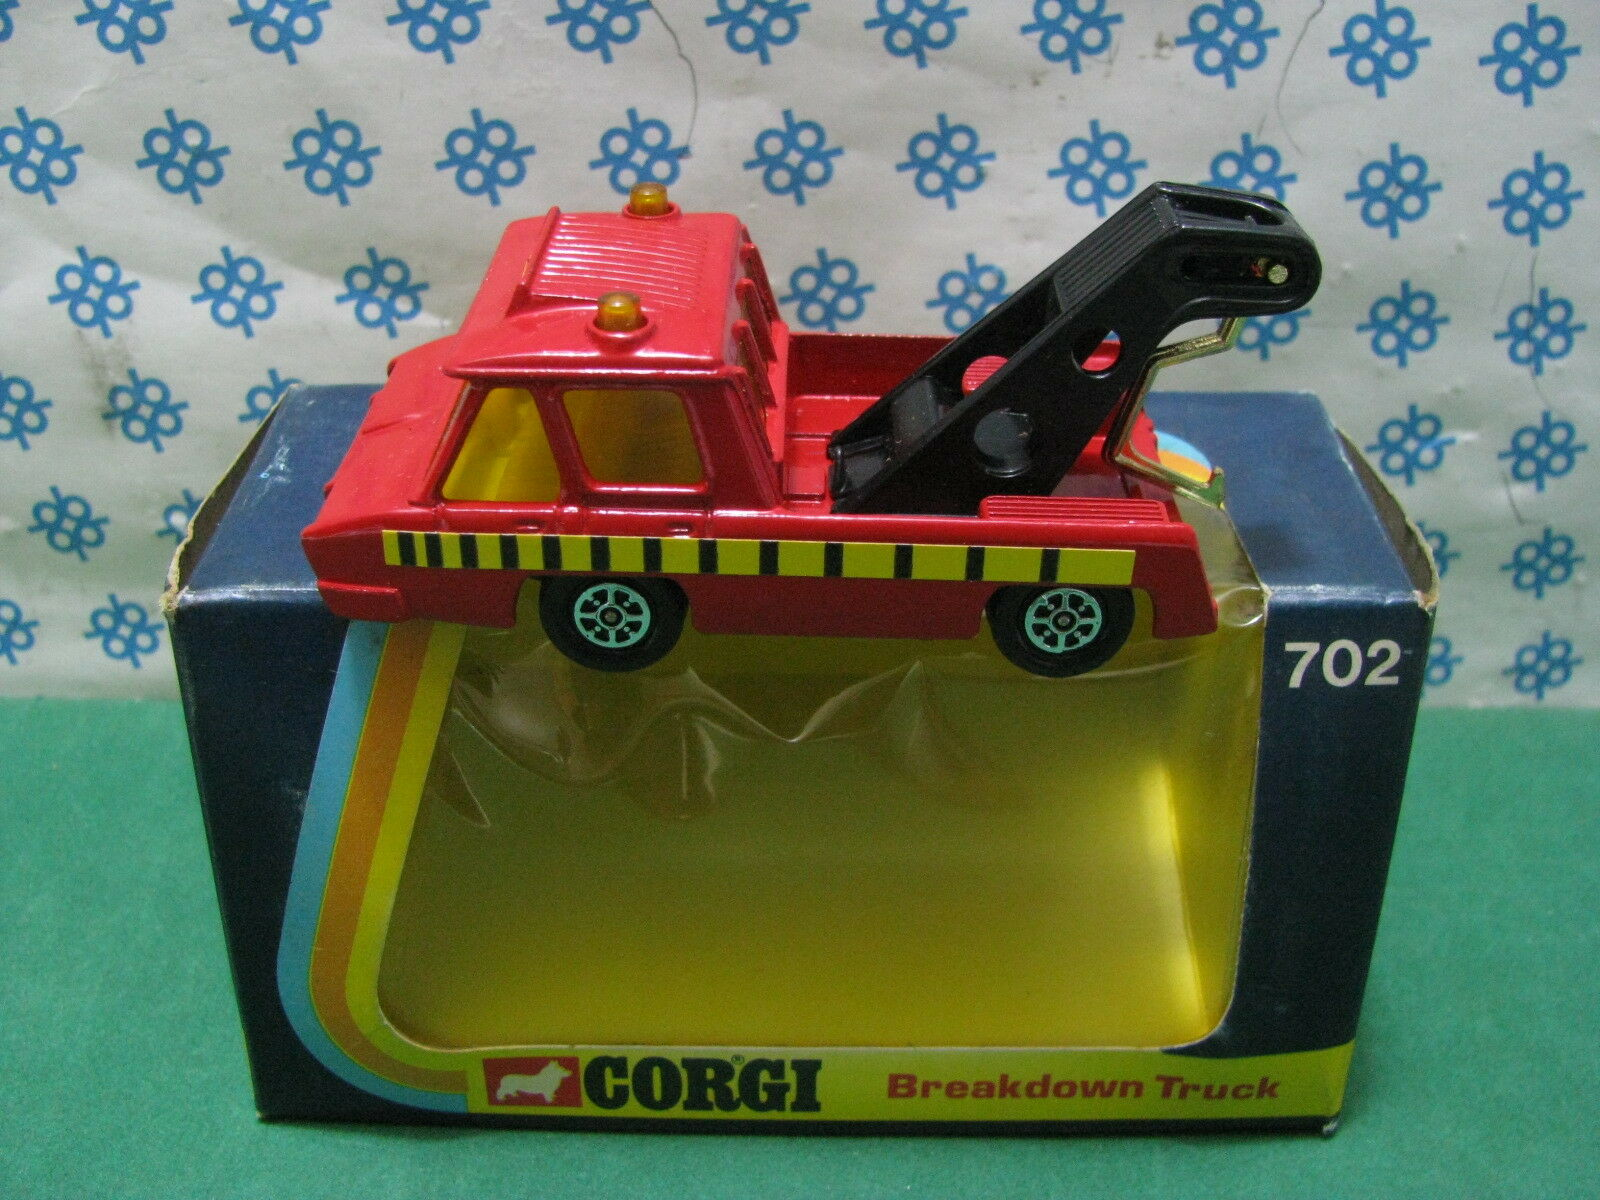 Vintage corgi Juguetes 702-breakdown Truck-made en gt. Britain 1974